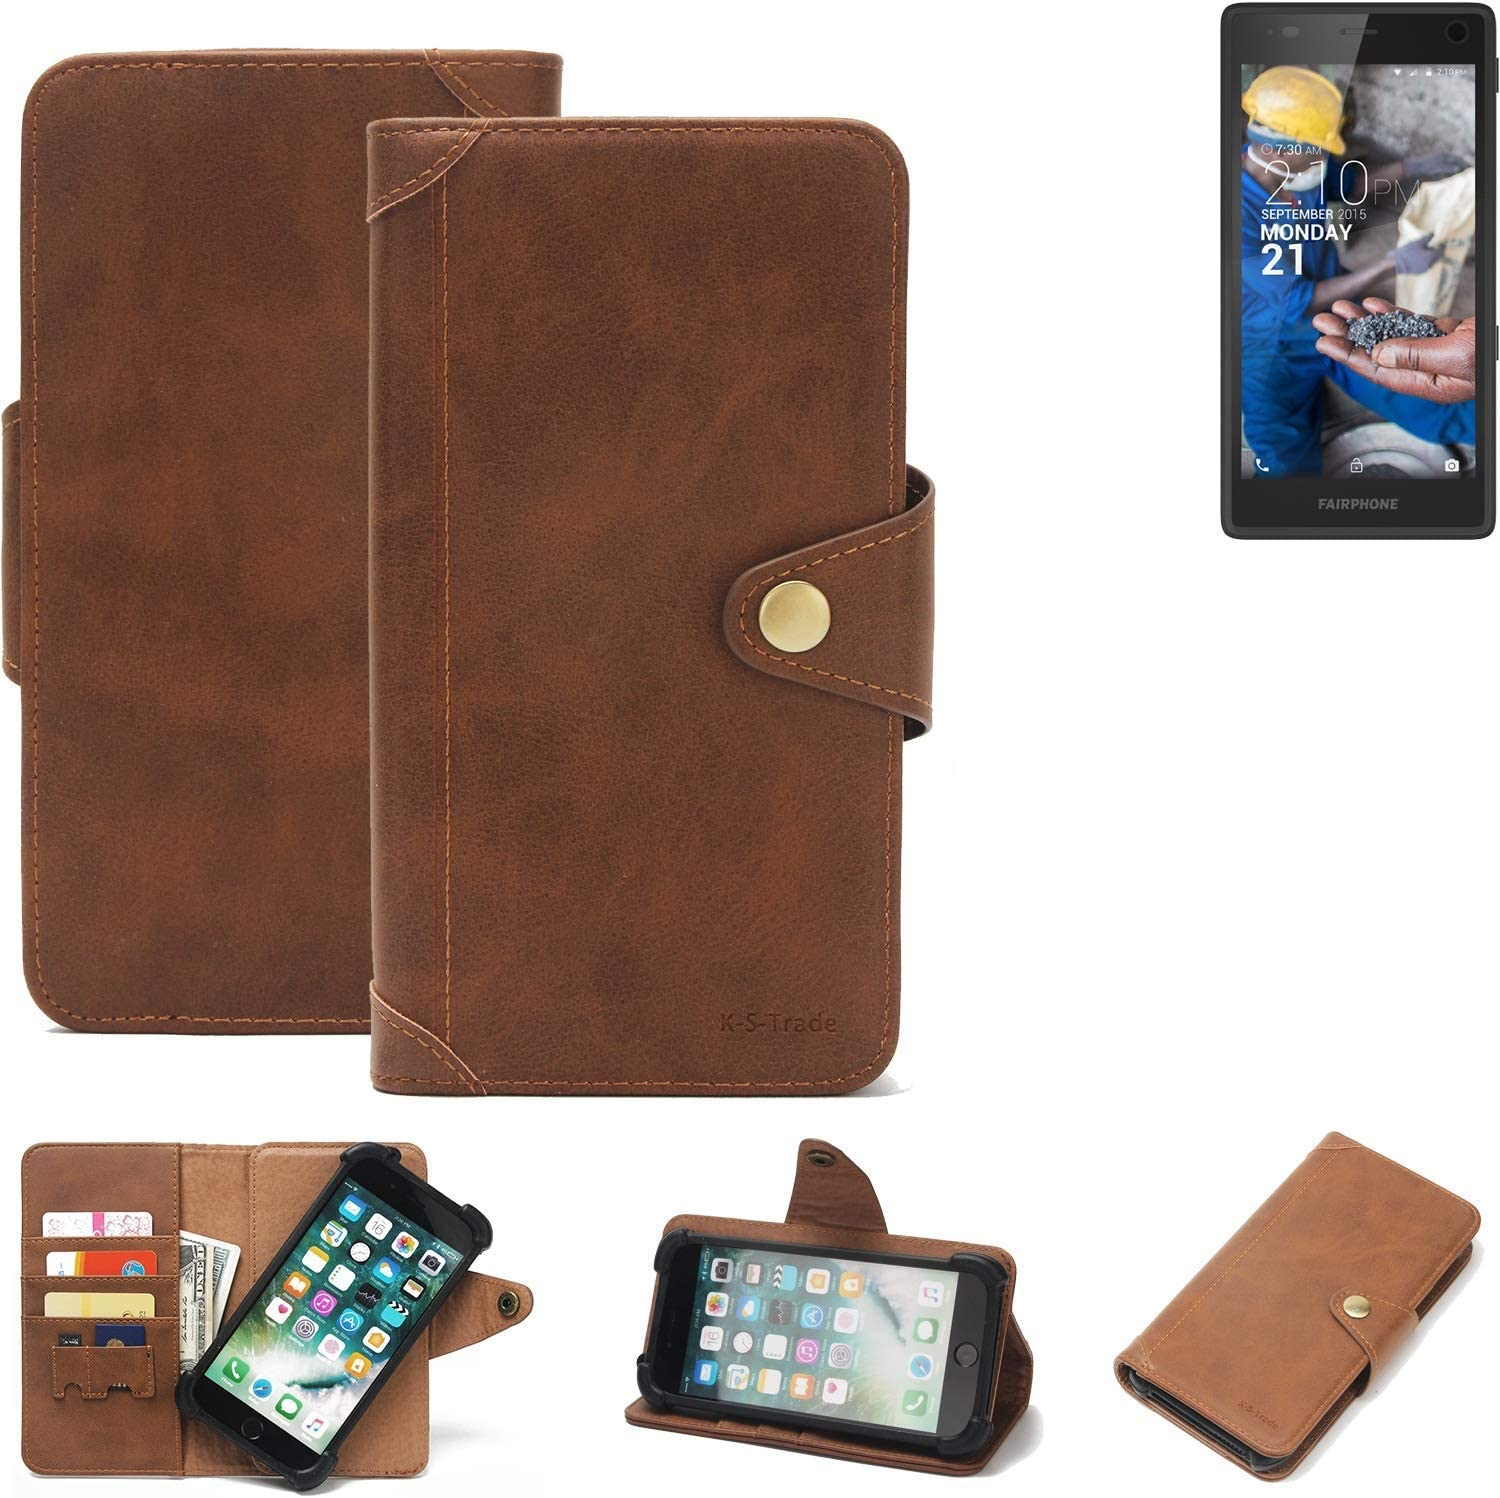 K-S-Trade Fairphone Fairphone 2 Wallet Case Mobile Phone Bookstyle Cover Phone Purse Protective Bag Mobile Phone Sleeve Book Case Flip Cover PU Brown (1x): Amazon.es: Electrónica